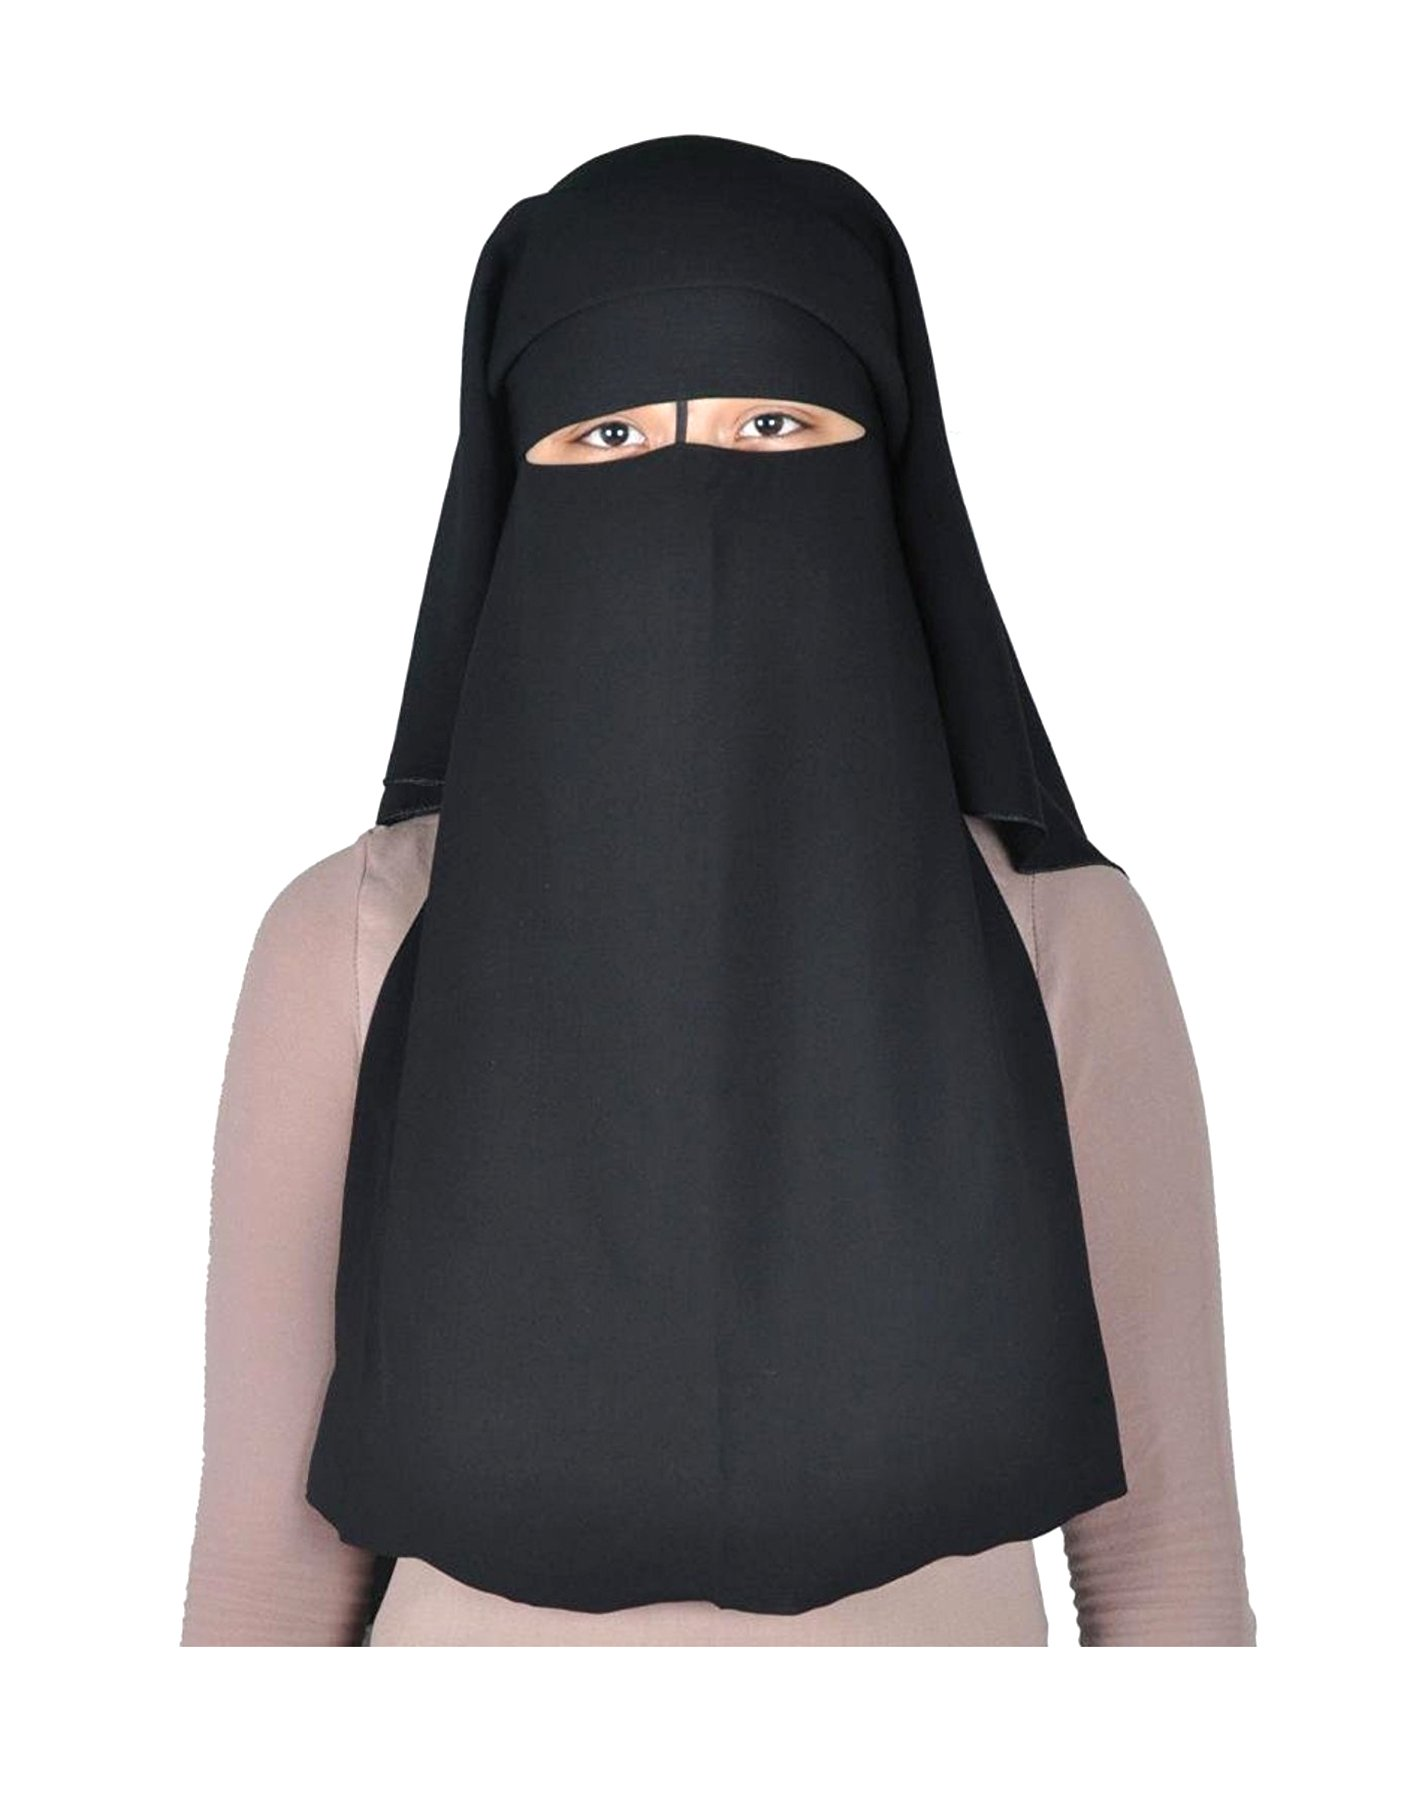 Long Saudi Niqab Nikab 3 Layers burqa Hijab Face cover Veil Islam Islamic Jilbab (Black)